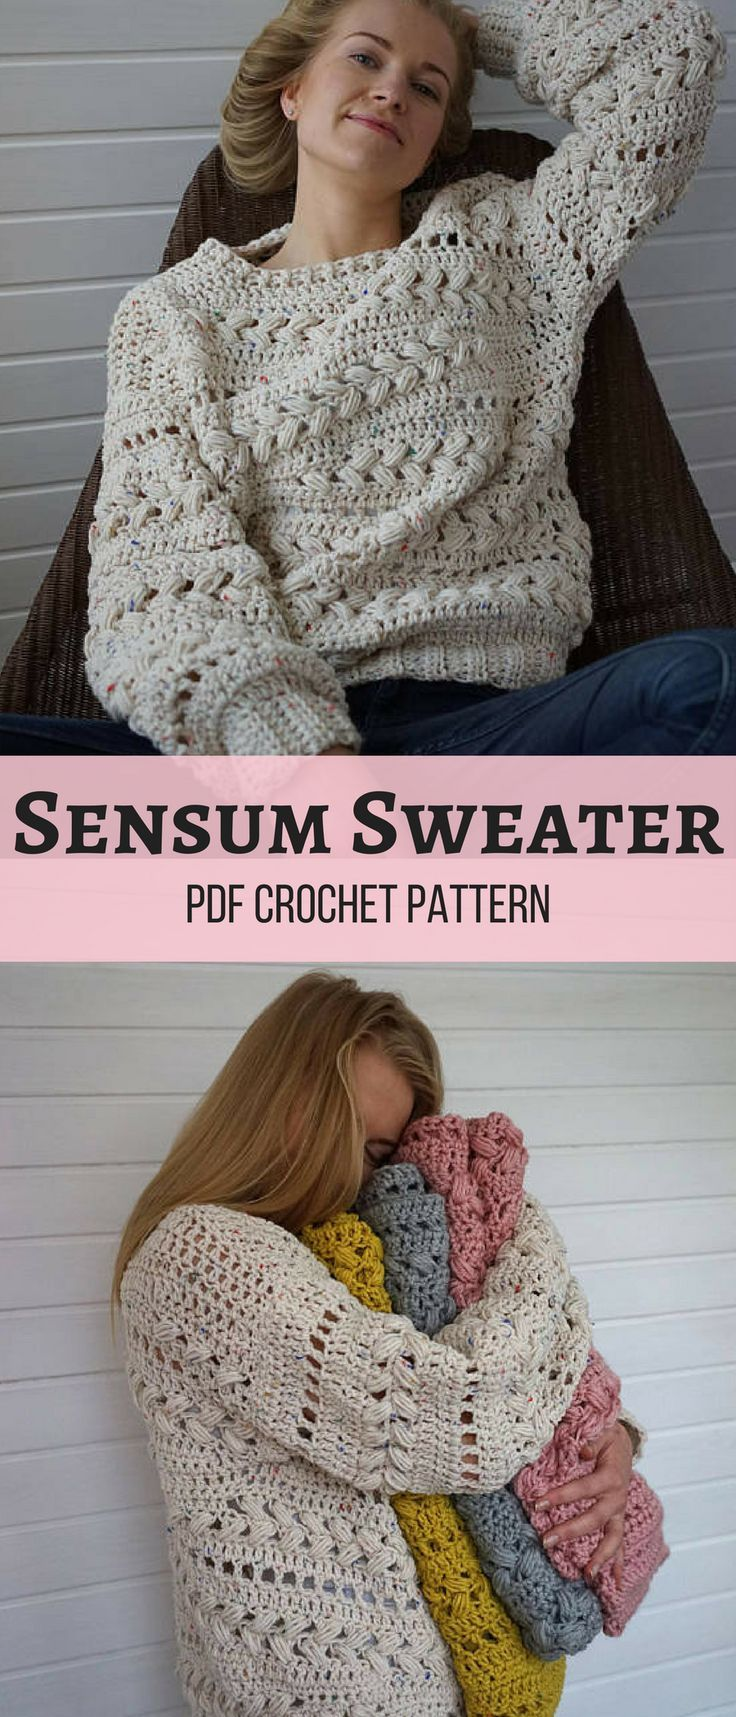 Make your own cozy Crochet Sensum Sweater! Love the beautiful puff stitch braids. #crochetsweater #ad #pattern